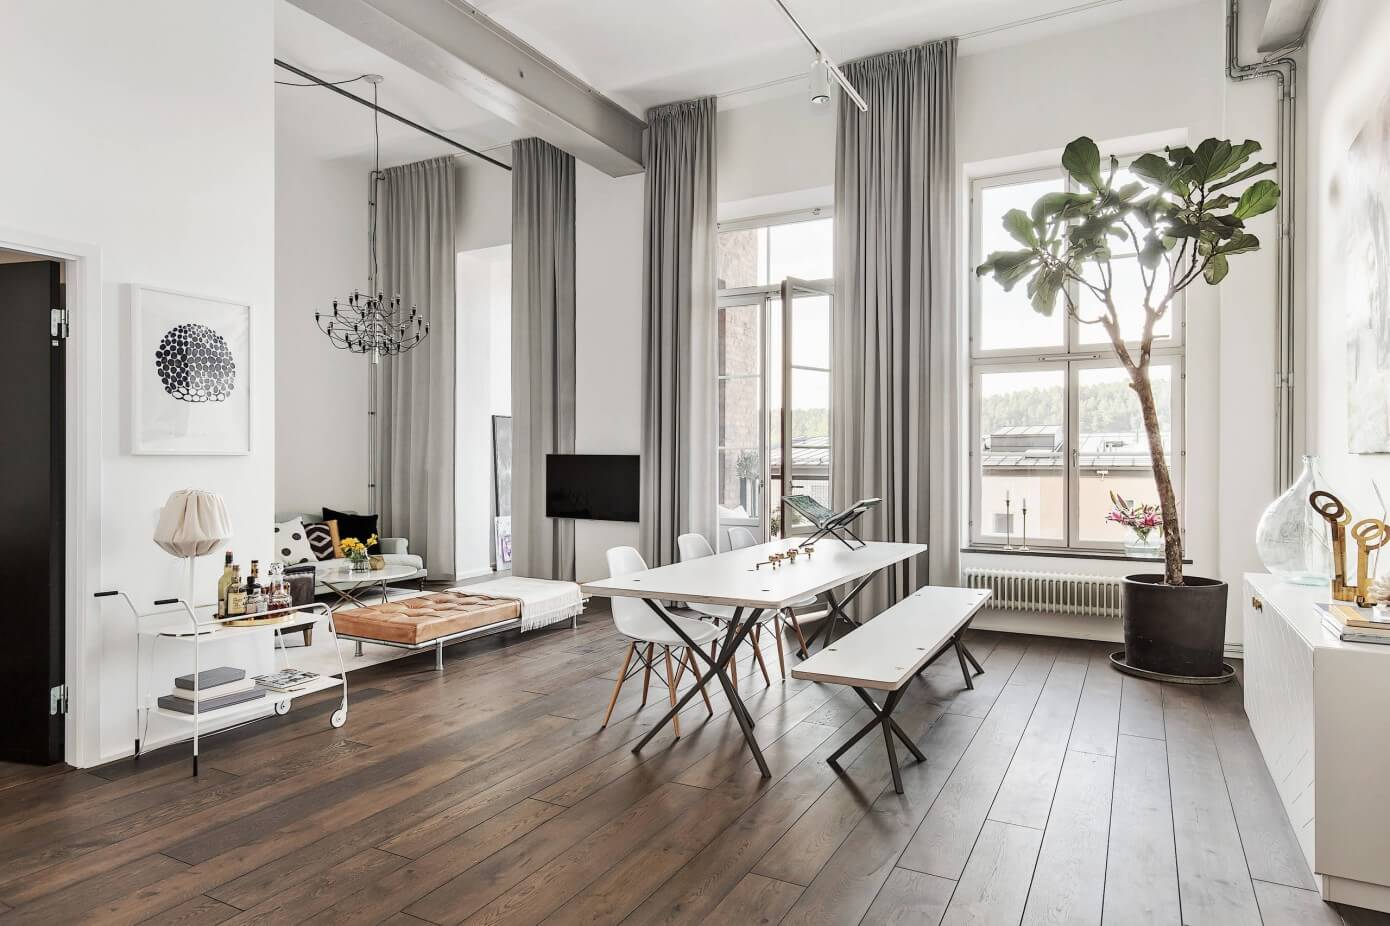 Apartment in Stockholm   HomeAdore